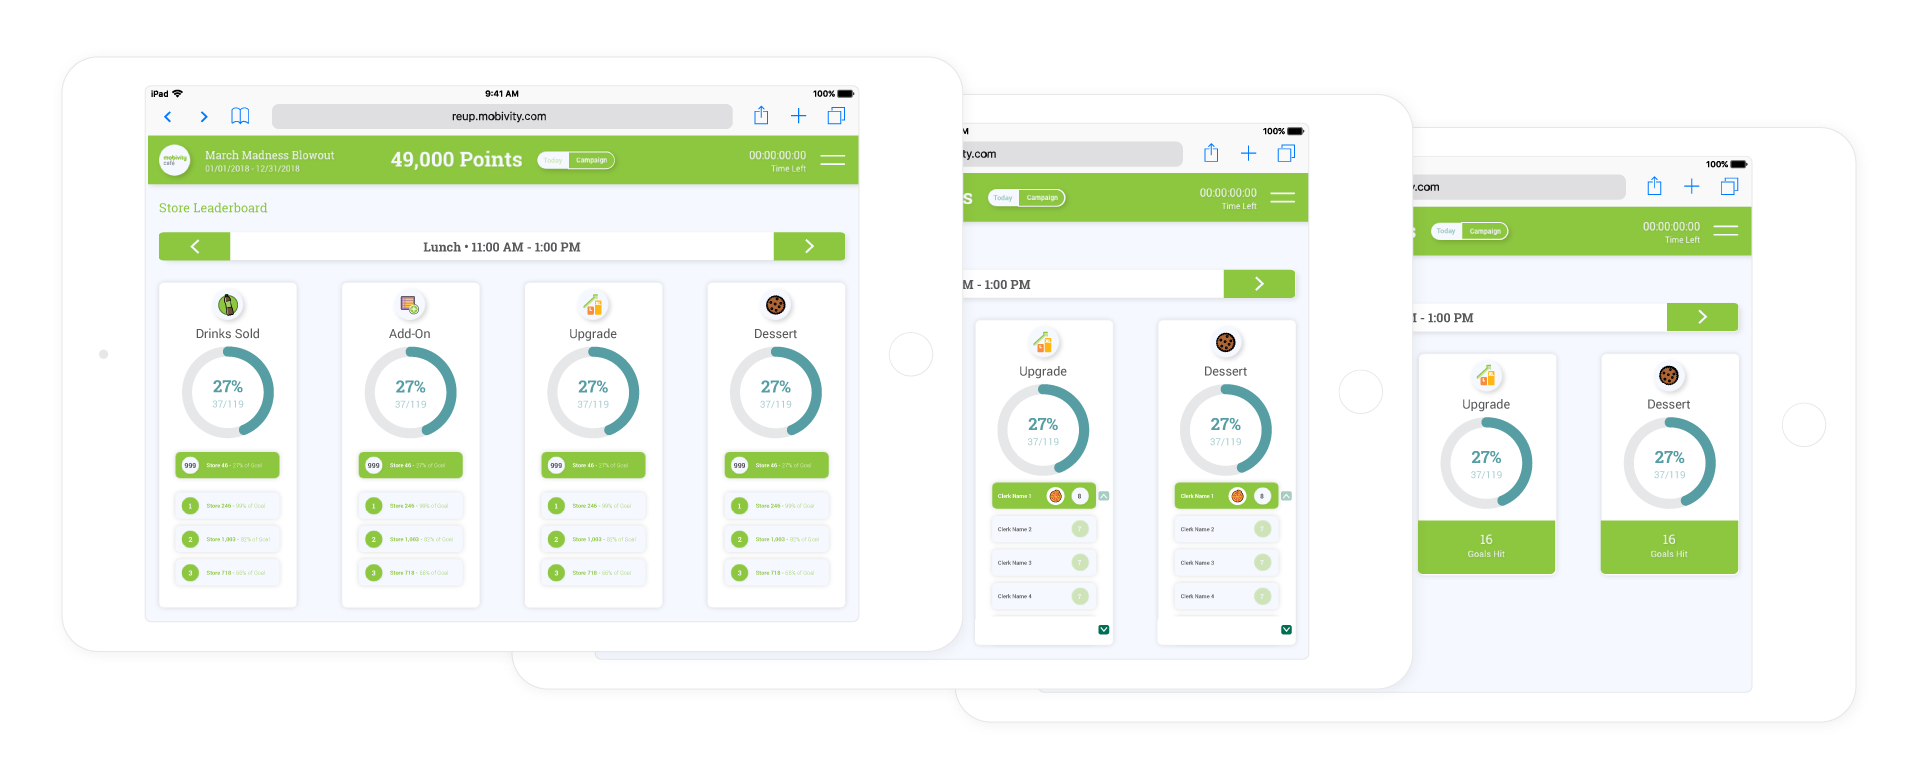 Dashboarding Tools to Motivate by Employee, Store, Shift, and More